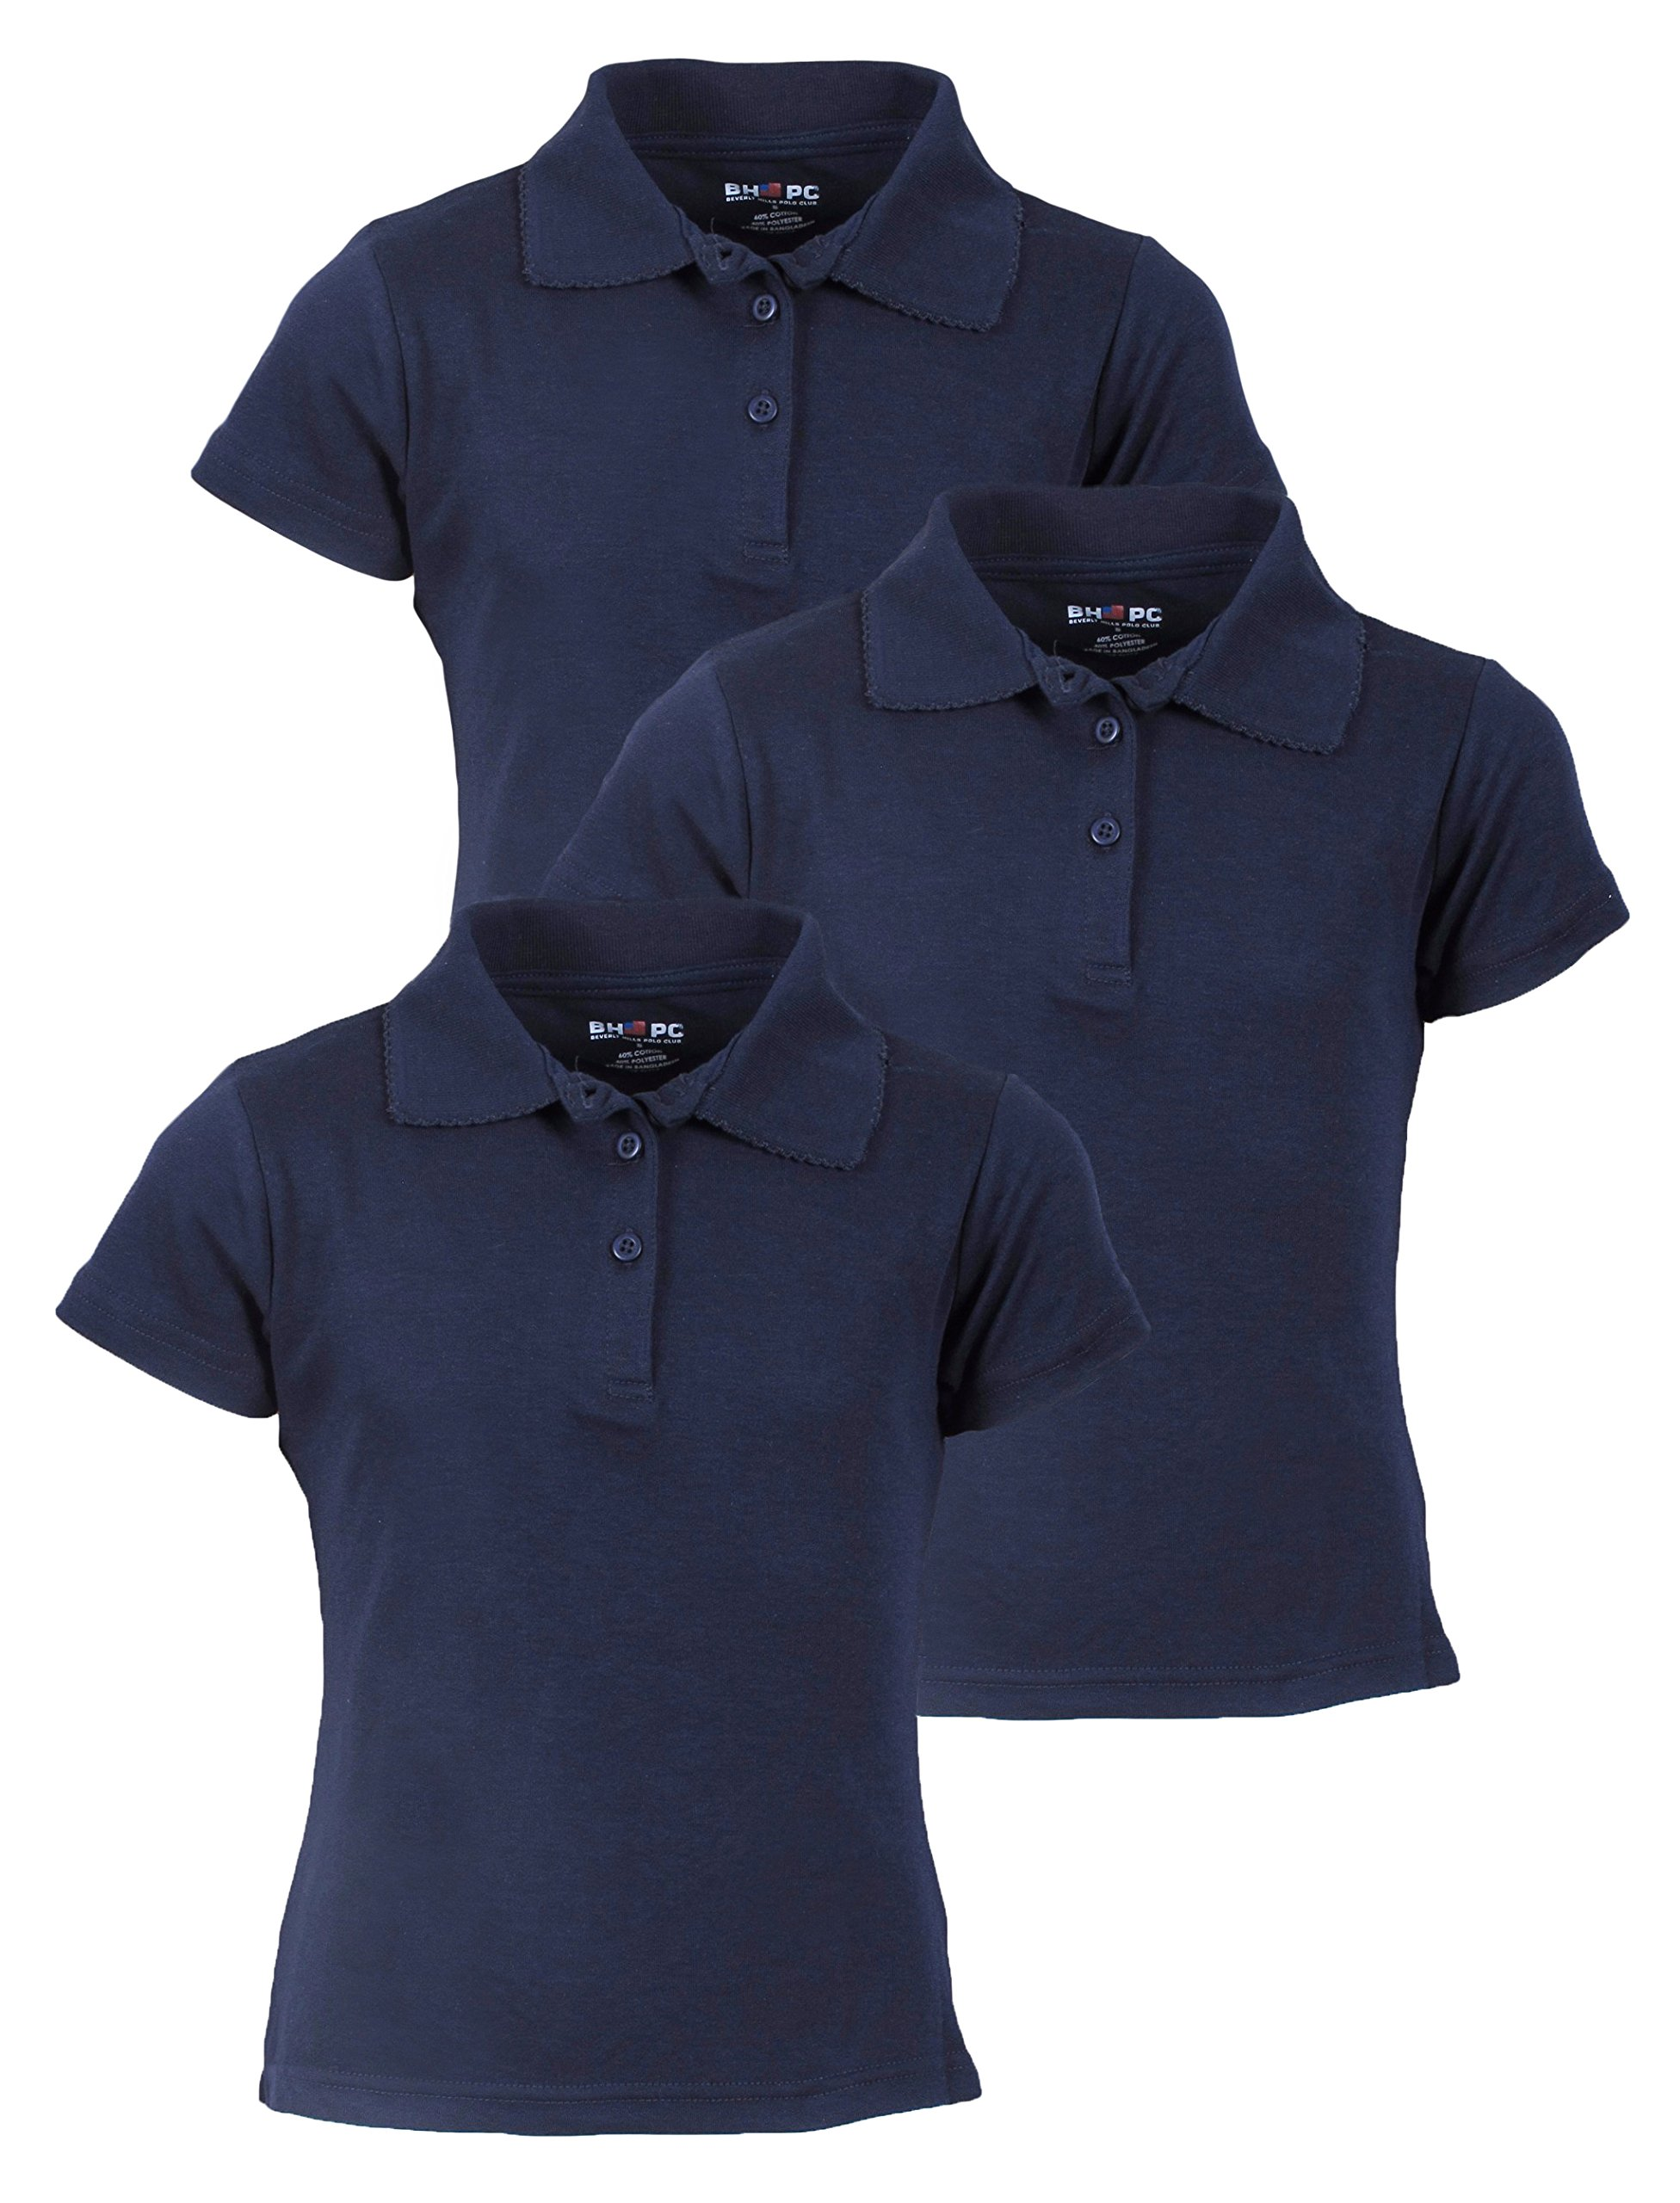 Beverly Hills Polo Club 3 Pack of Girls' Short Sleeve Interlock Uniform Polo Shirts, Size 14, Navy'